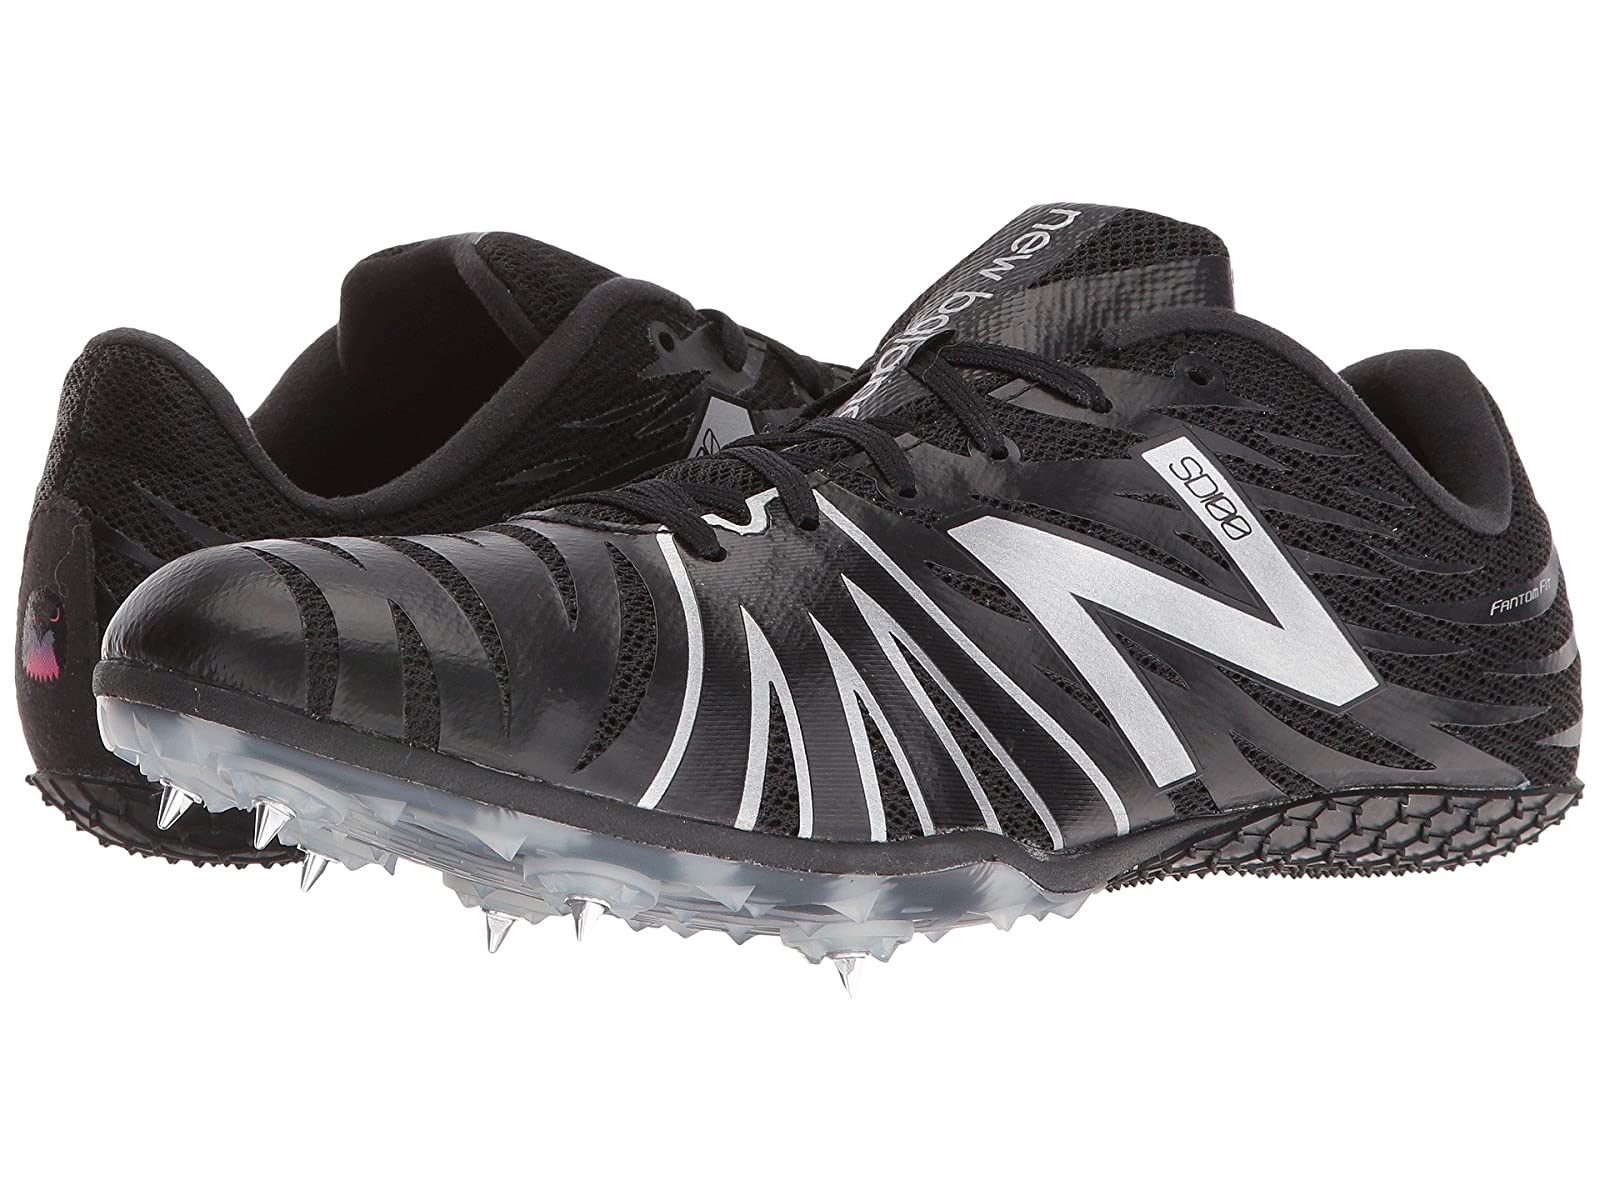 New Balance SD100v1 Sprint SpruceCheap and distinctive eye-catching shoes